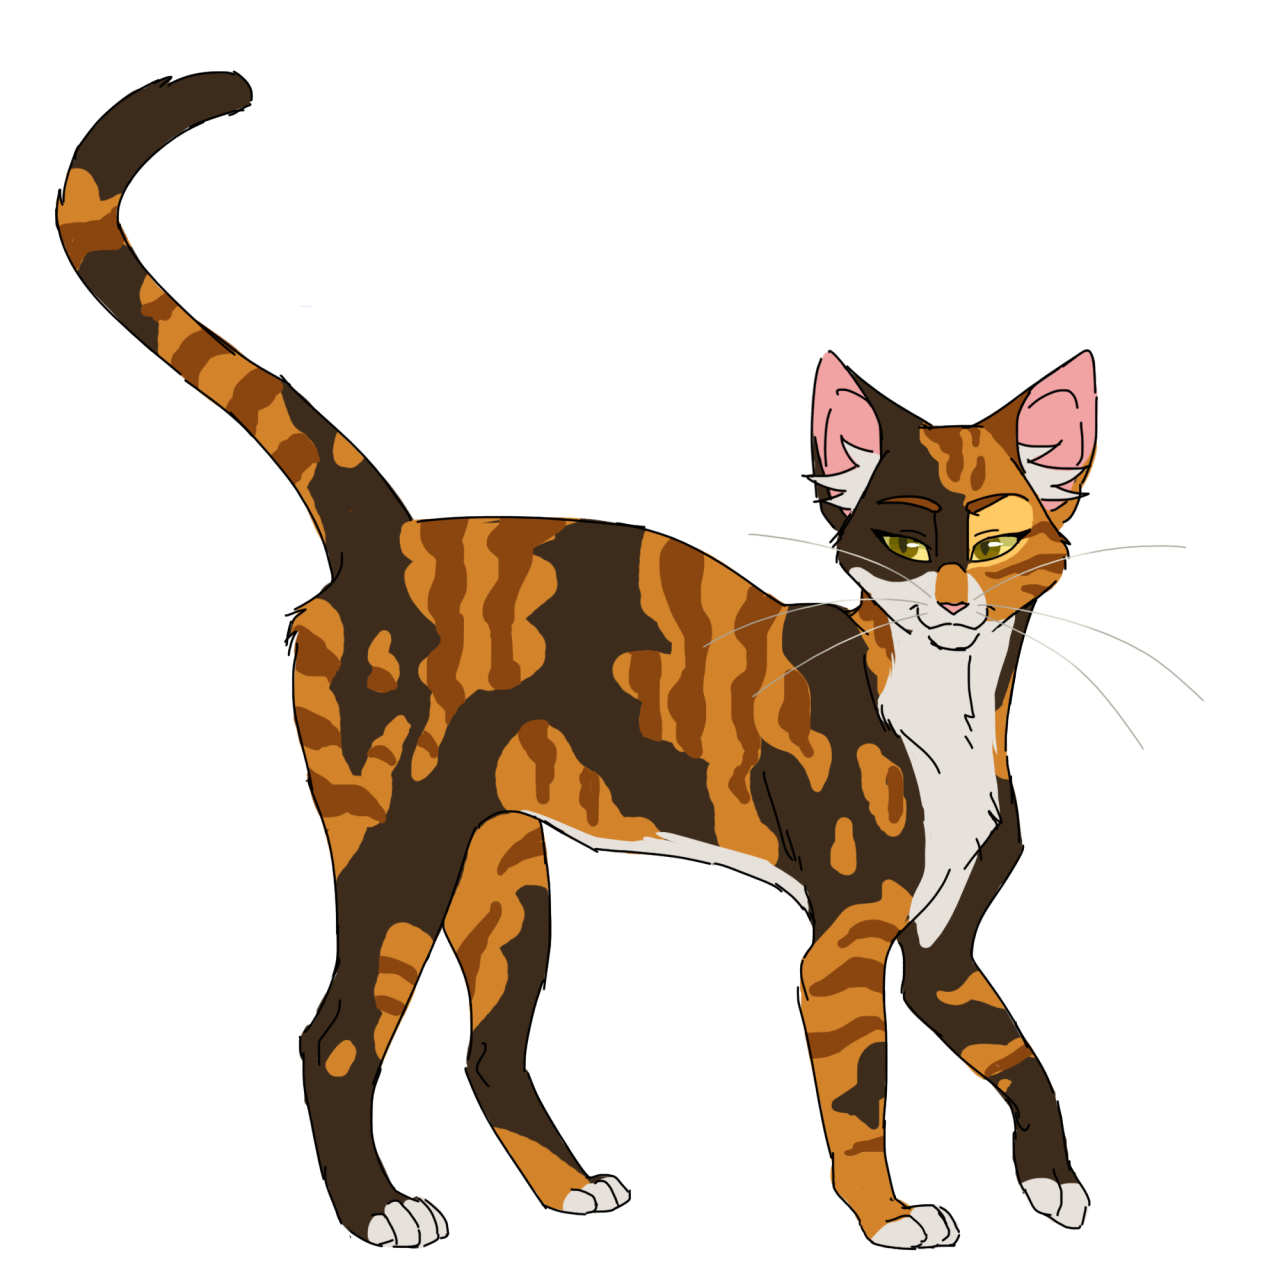 Warrior cats clipart png royalty free download Warrior Cats Designs : Photo | Warrior cats | Warrior cats ... png royalty free download